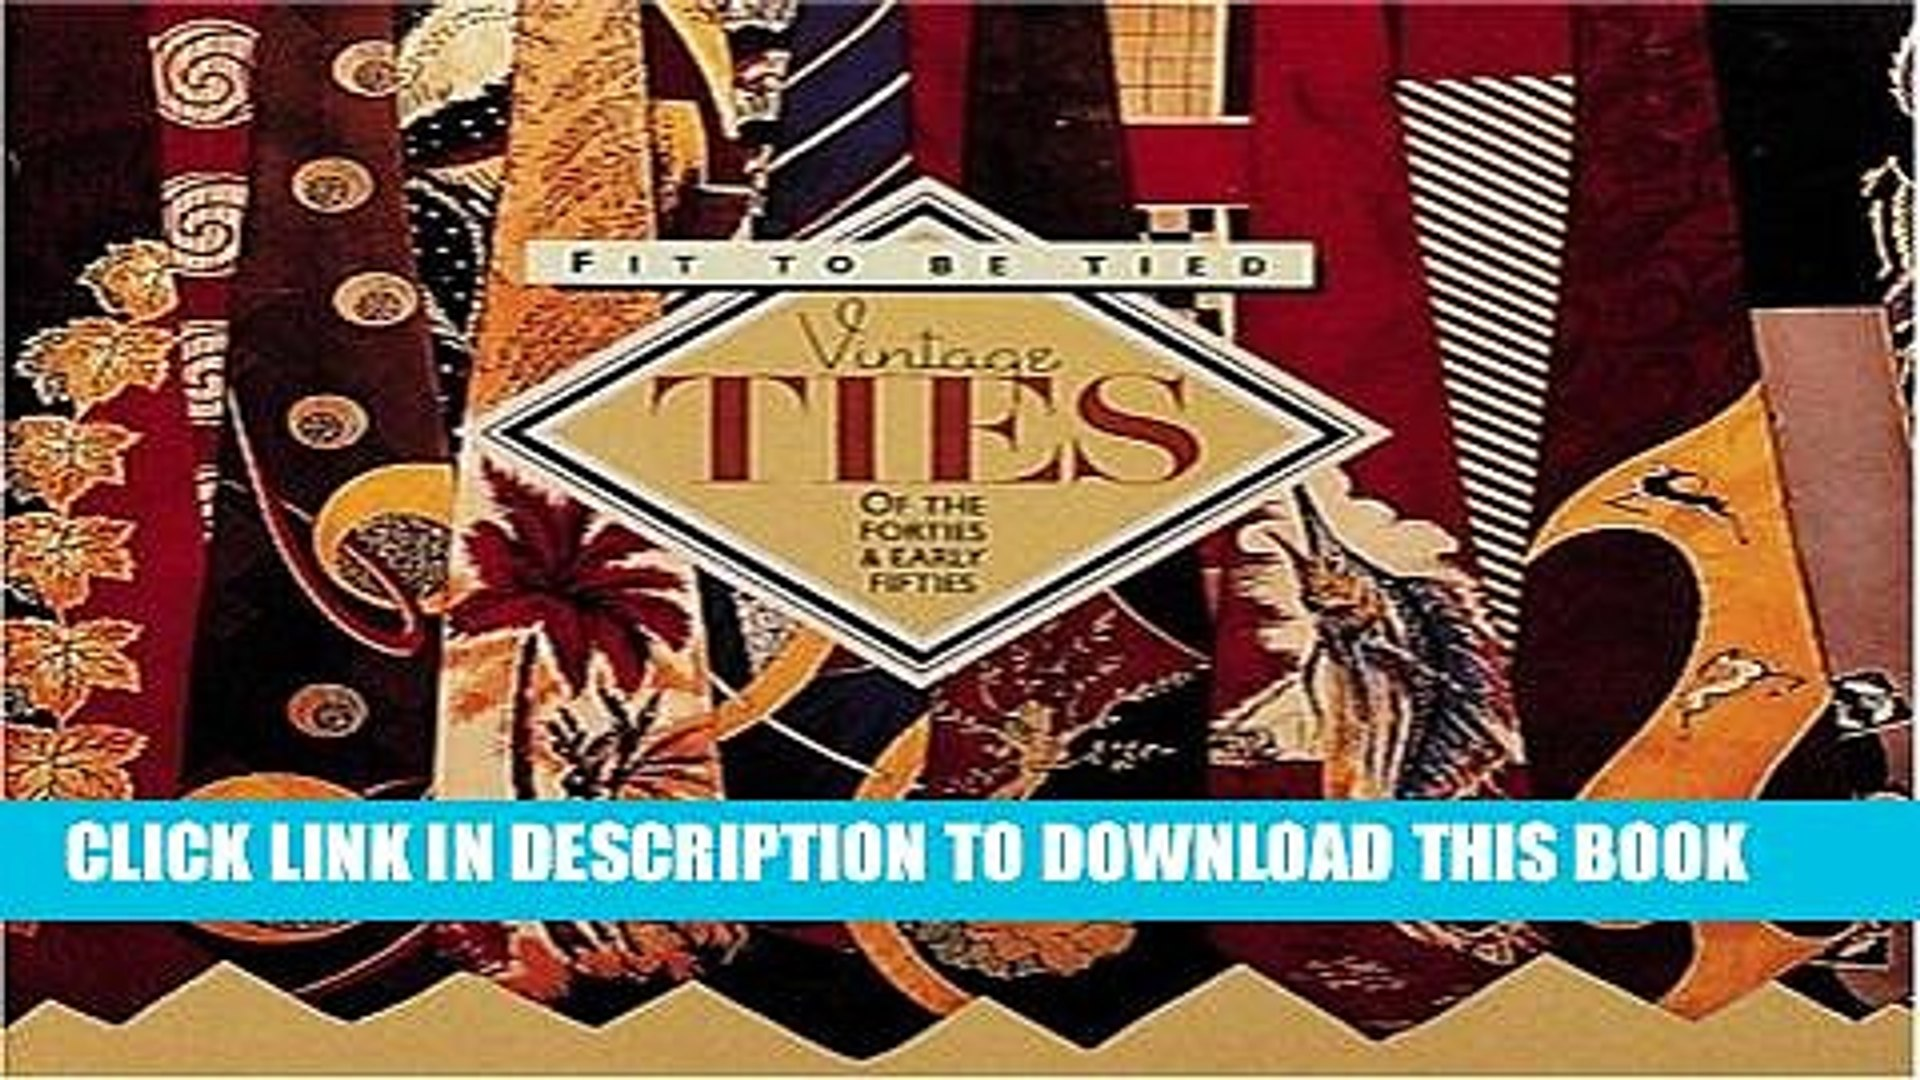 Best Seller Fit to Be Tied: Vintage Ties of the Forties and Early Fifties (Recollectibles) Free